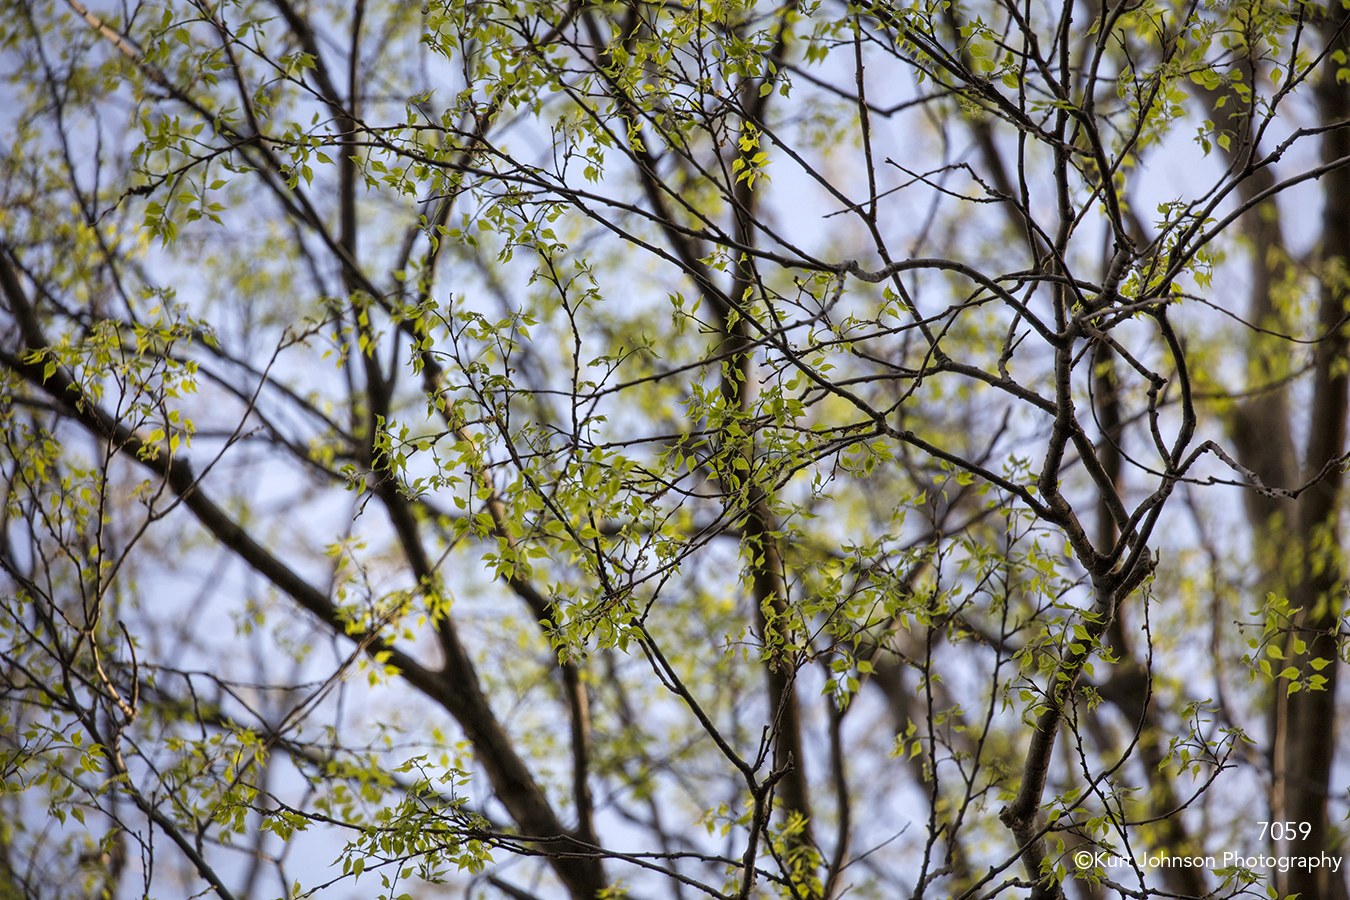 trees green branches leaves